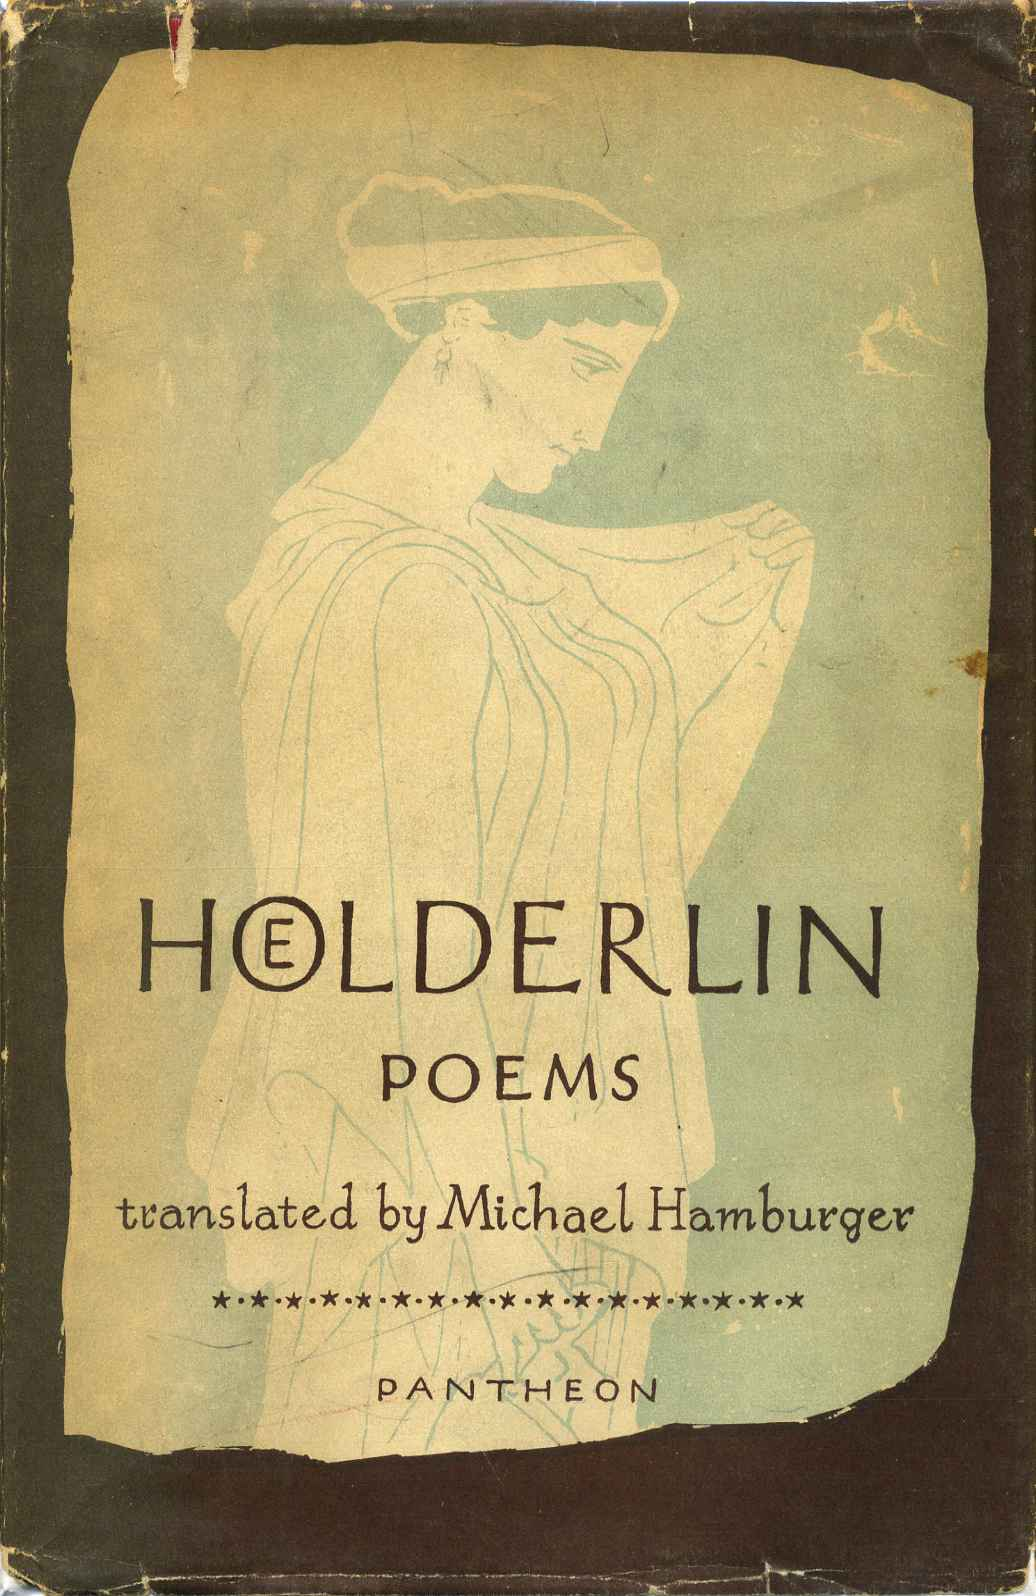 Holderlin, Translated by Michael Hamburger